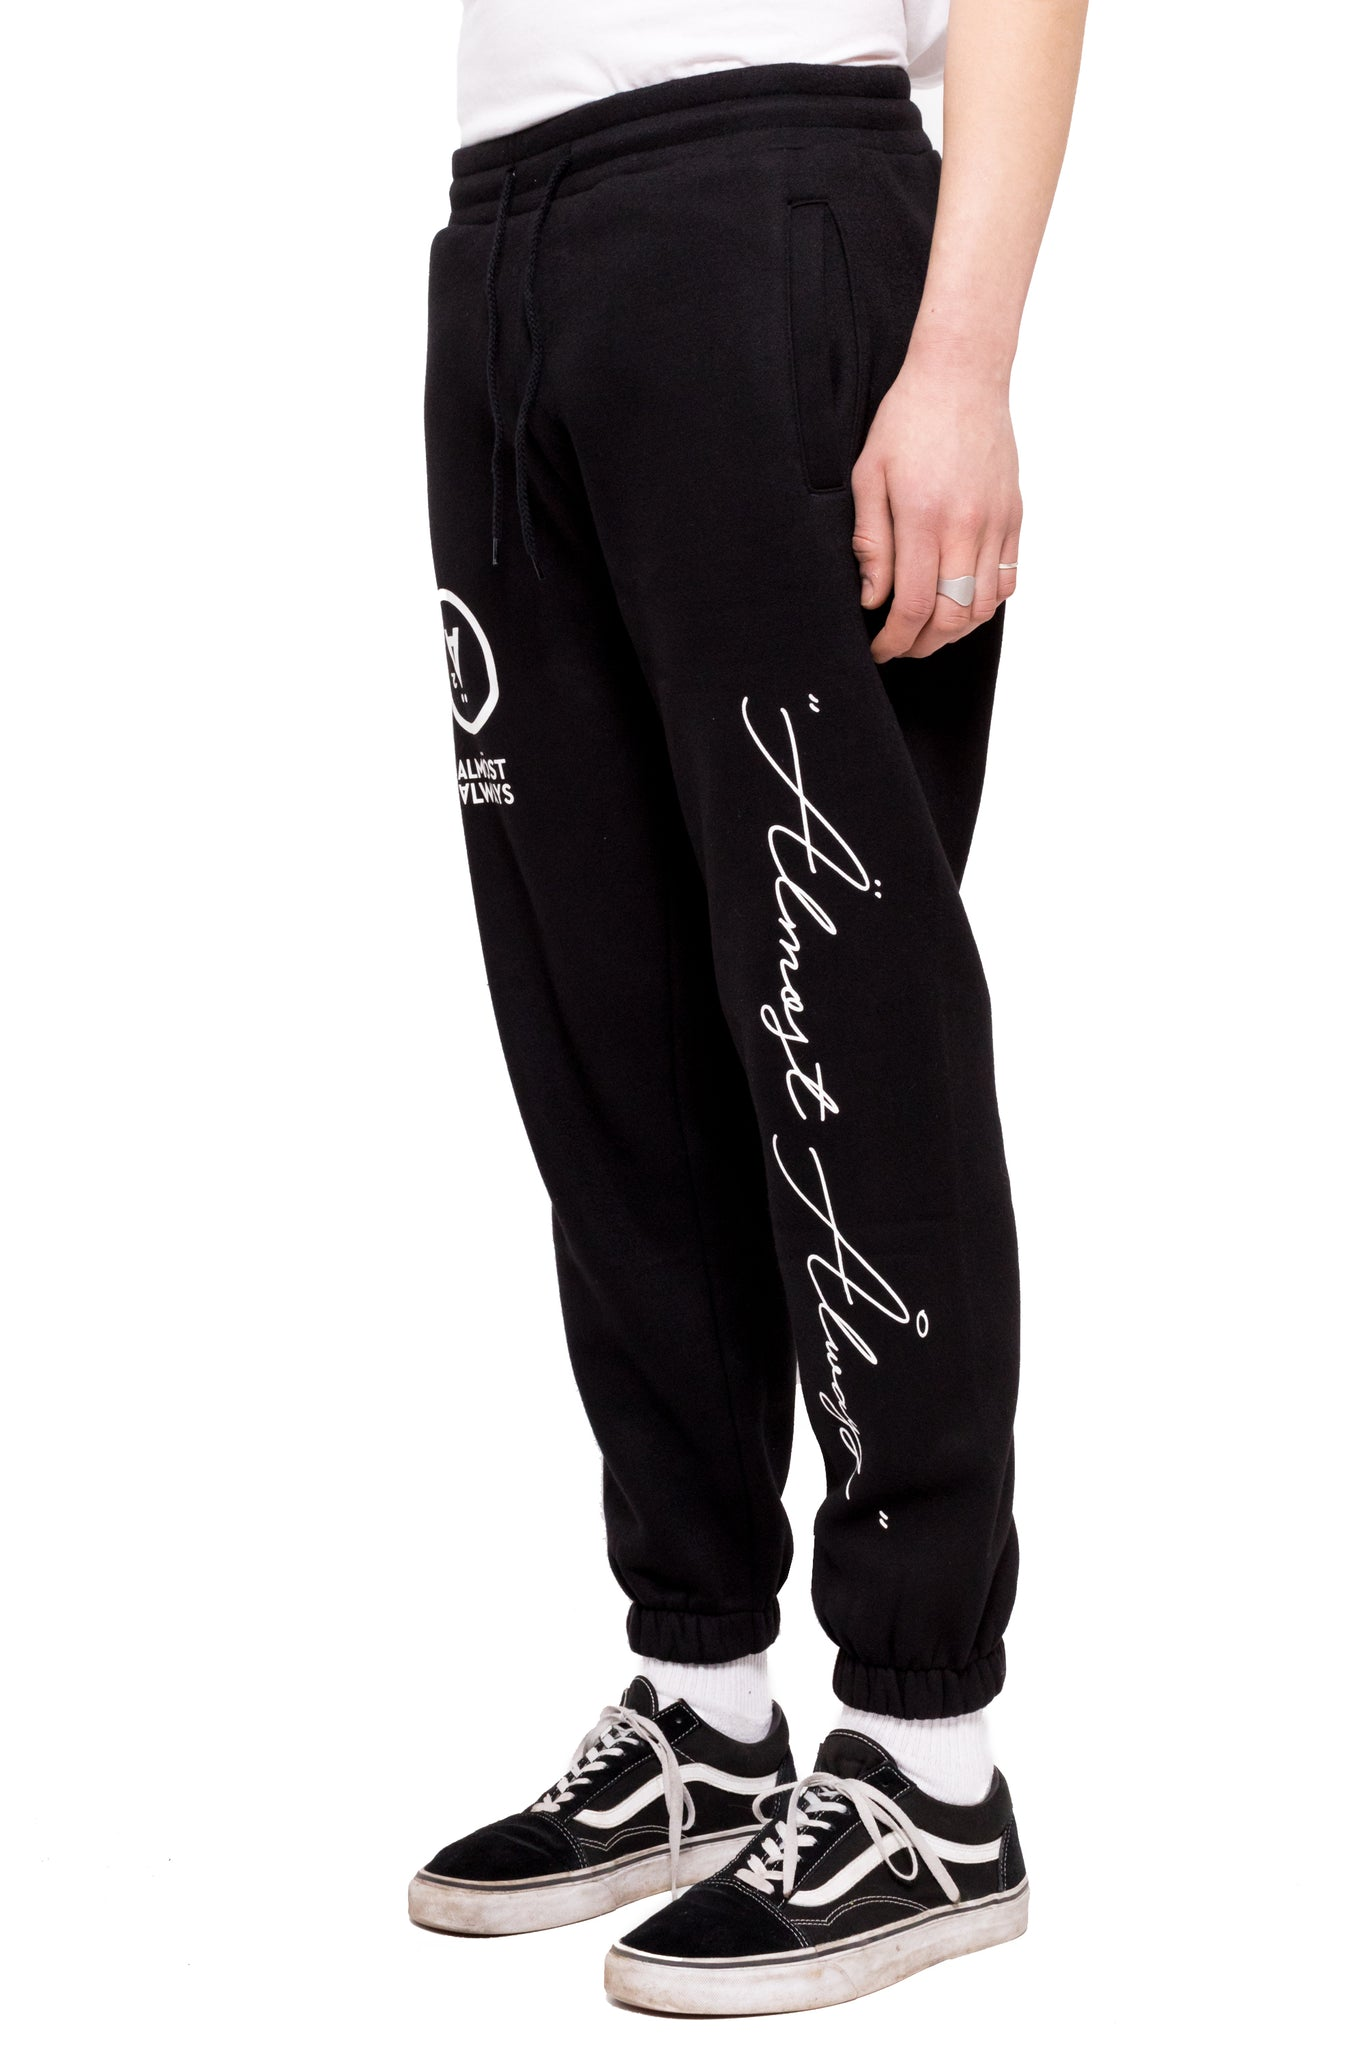 Home Office Sweatpants - Black